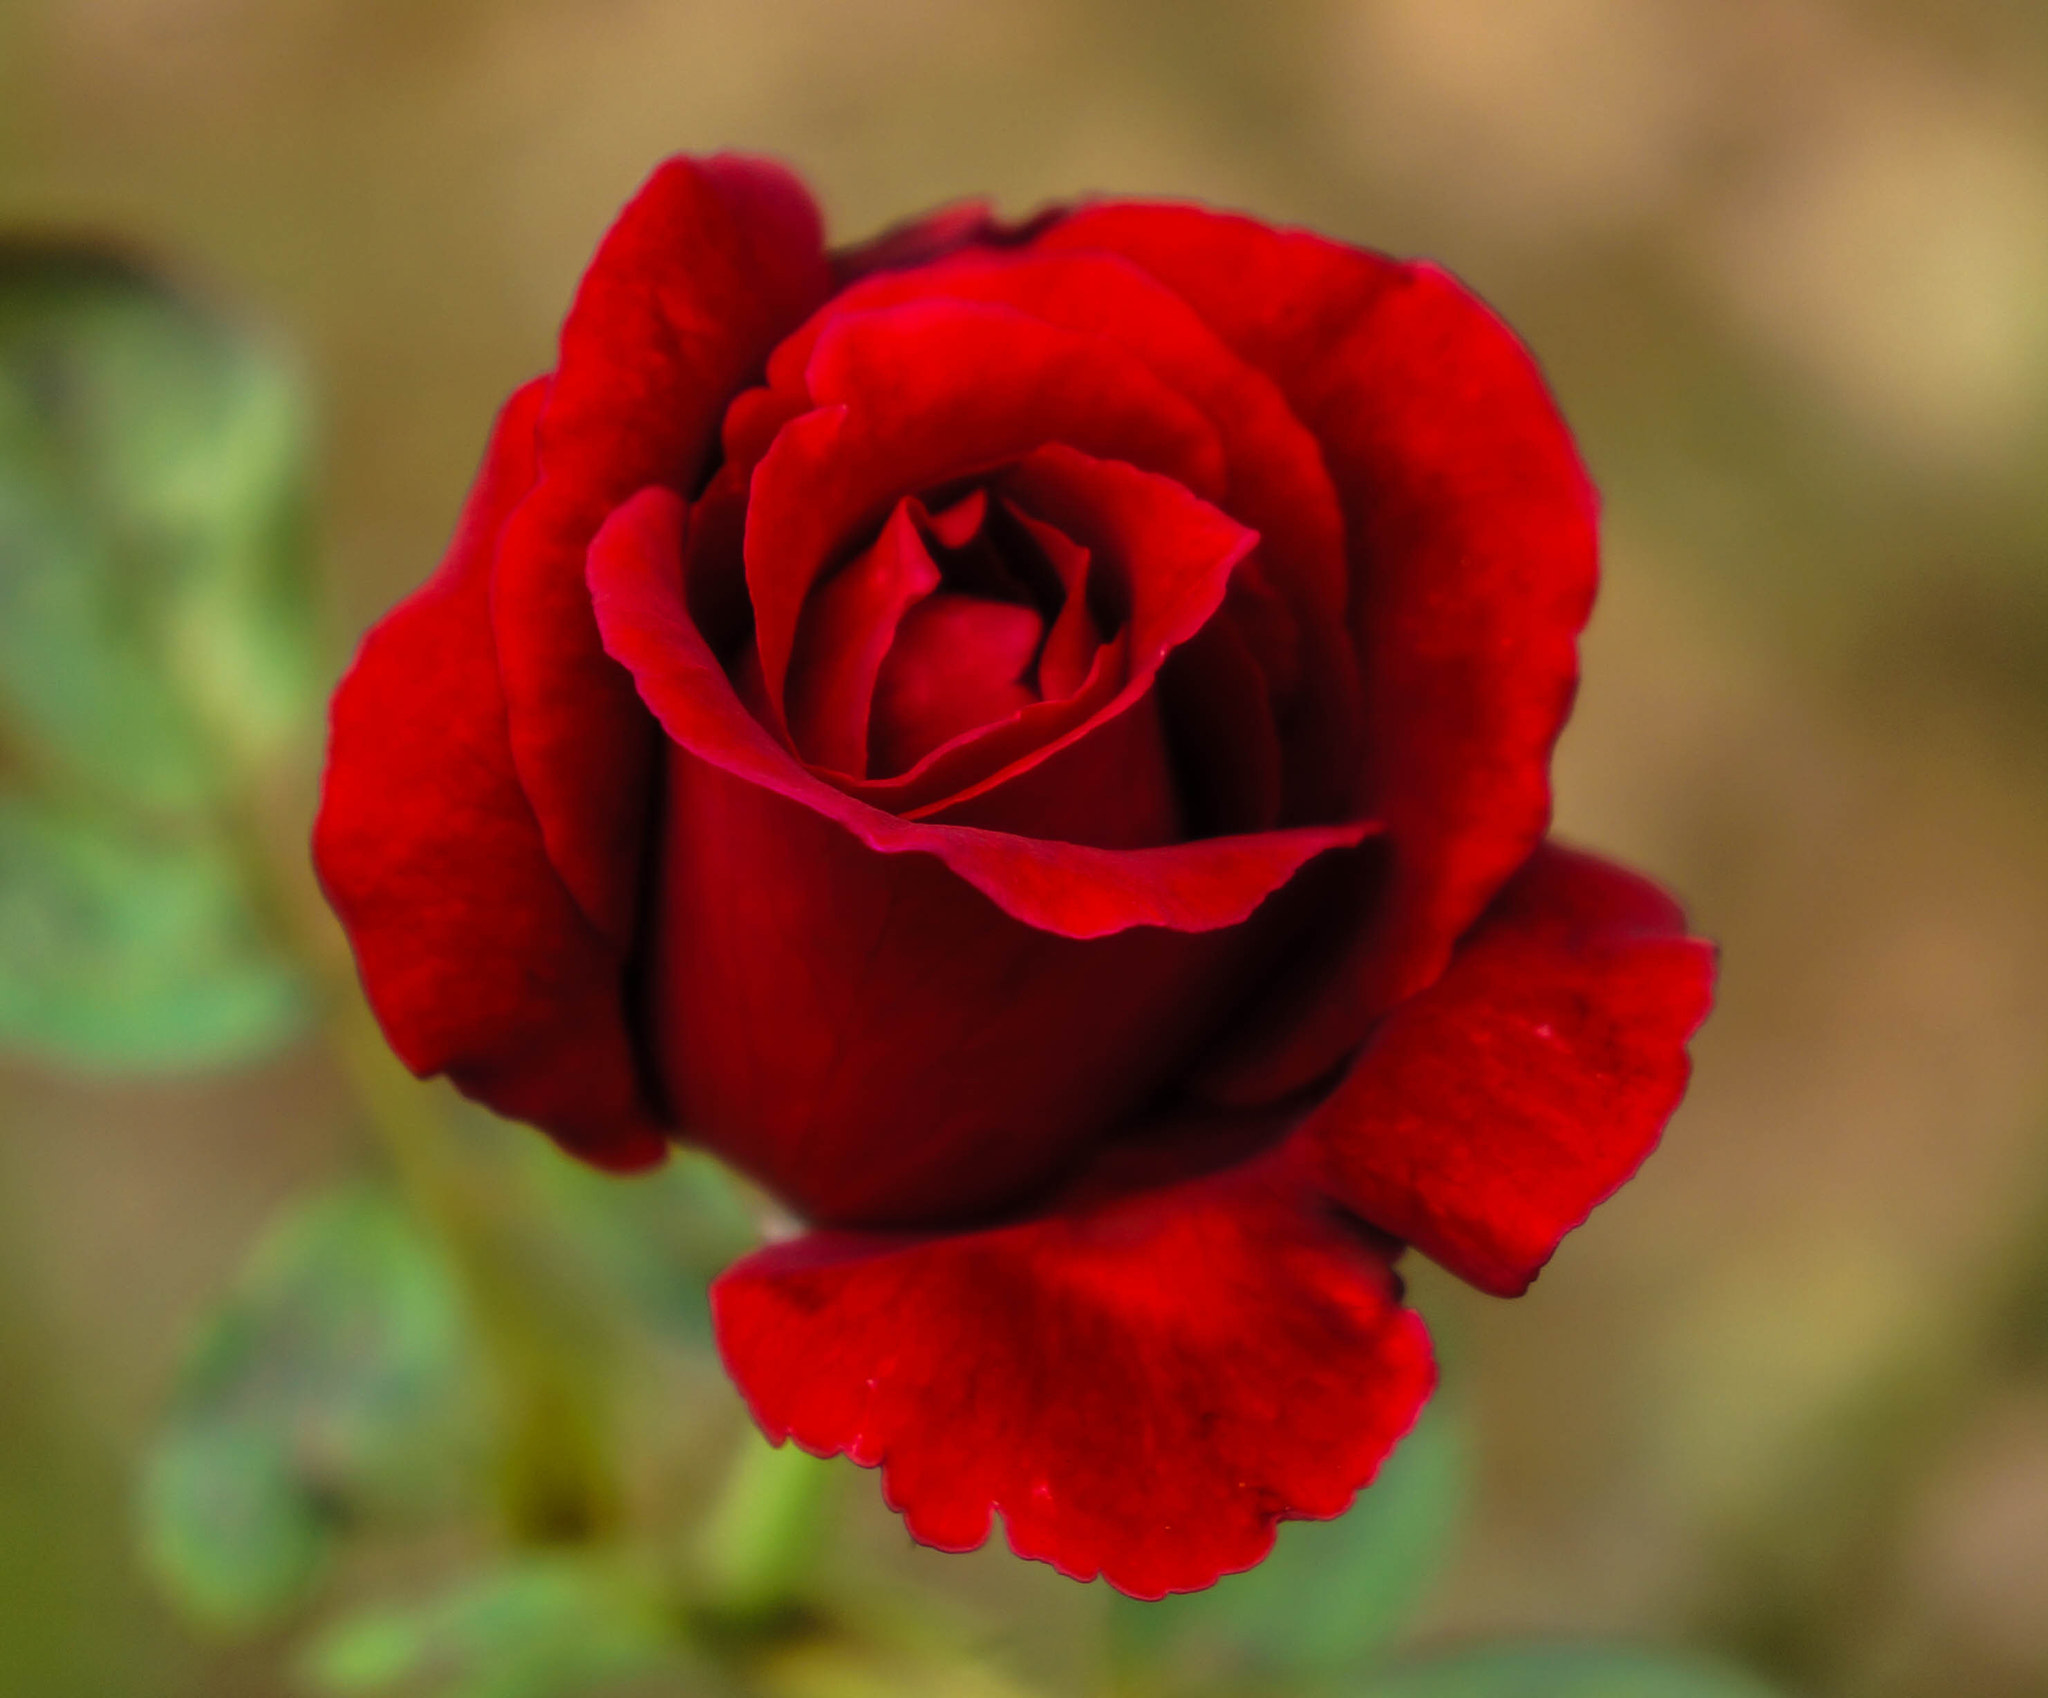 Photograph Roses are Red by Alyssa Paraggio on 500px